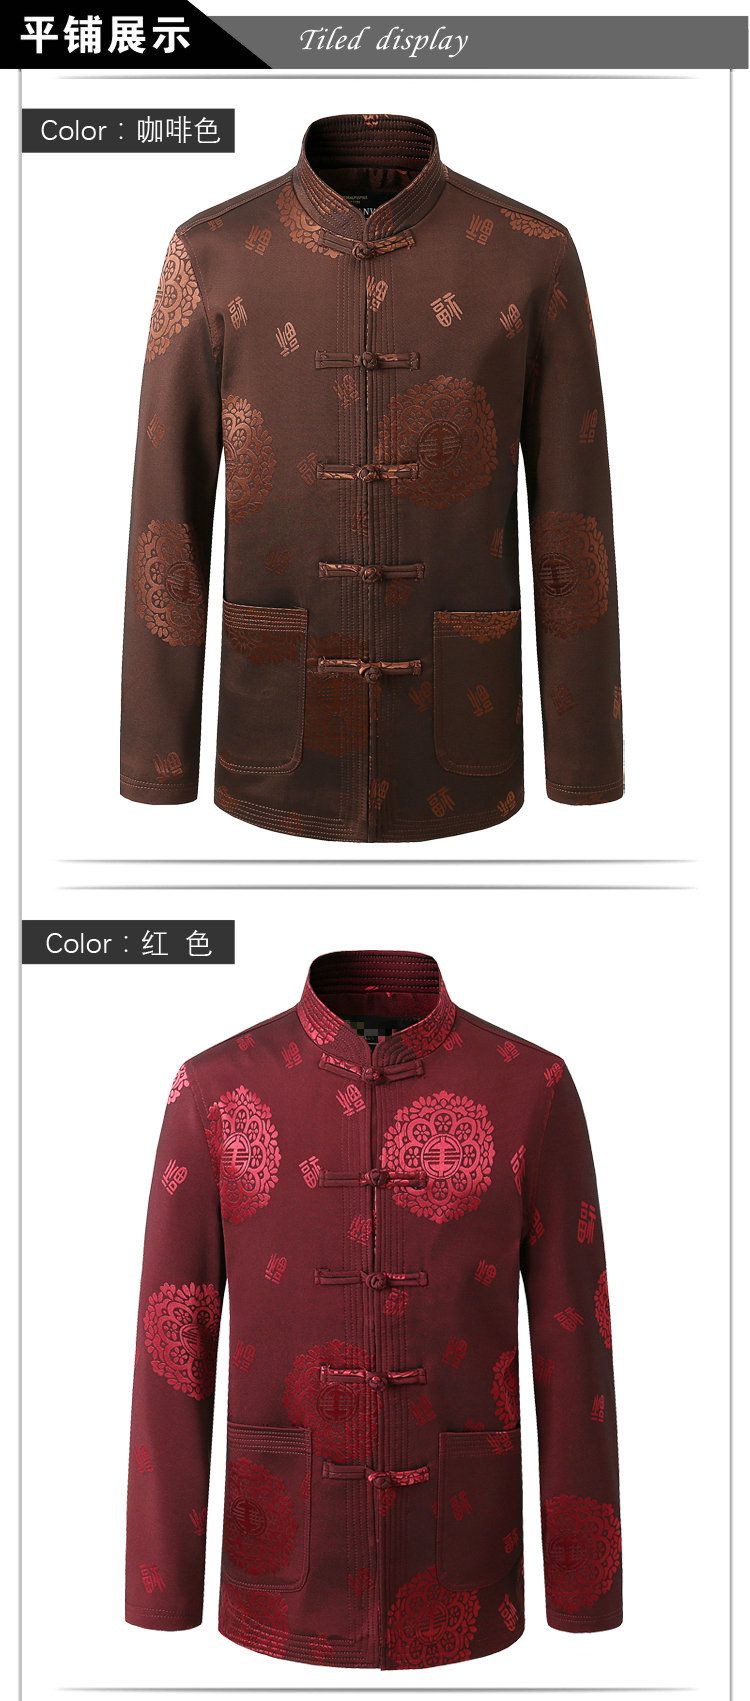 WAEOLSA Chinese Style Men Mandarin Collar Jacket Suits Man Ethnic Tangzhuang Coats Traditional Mao Suit Jackets Red Blue Oufits Plus Size (3)